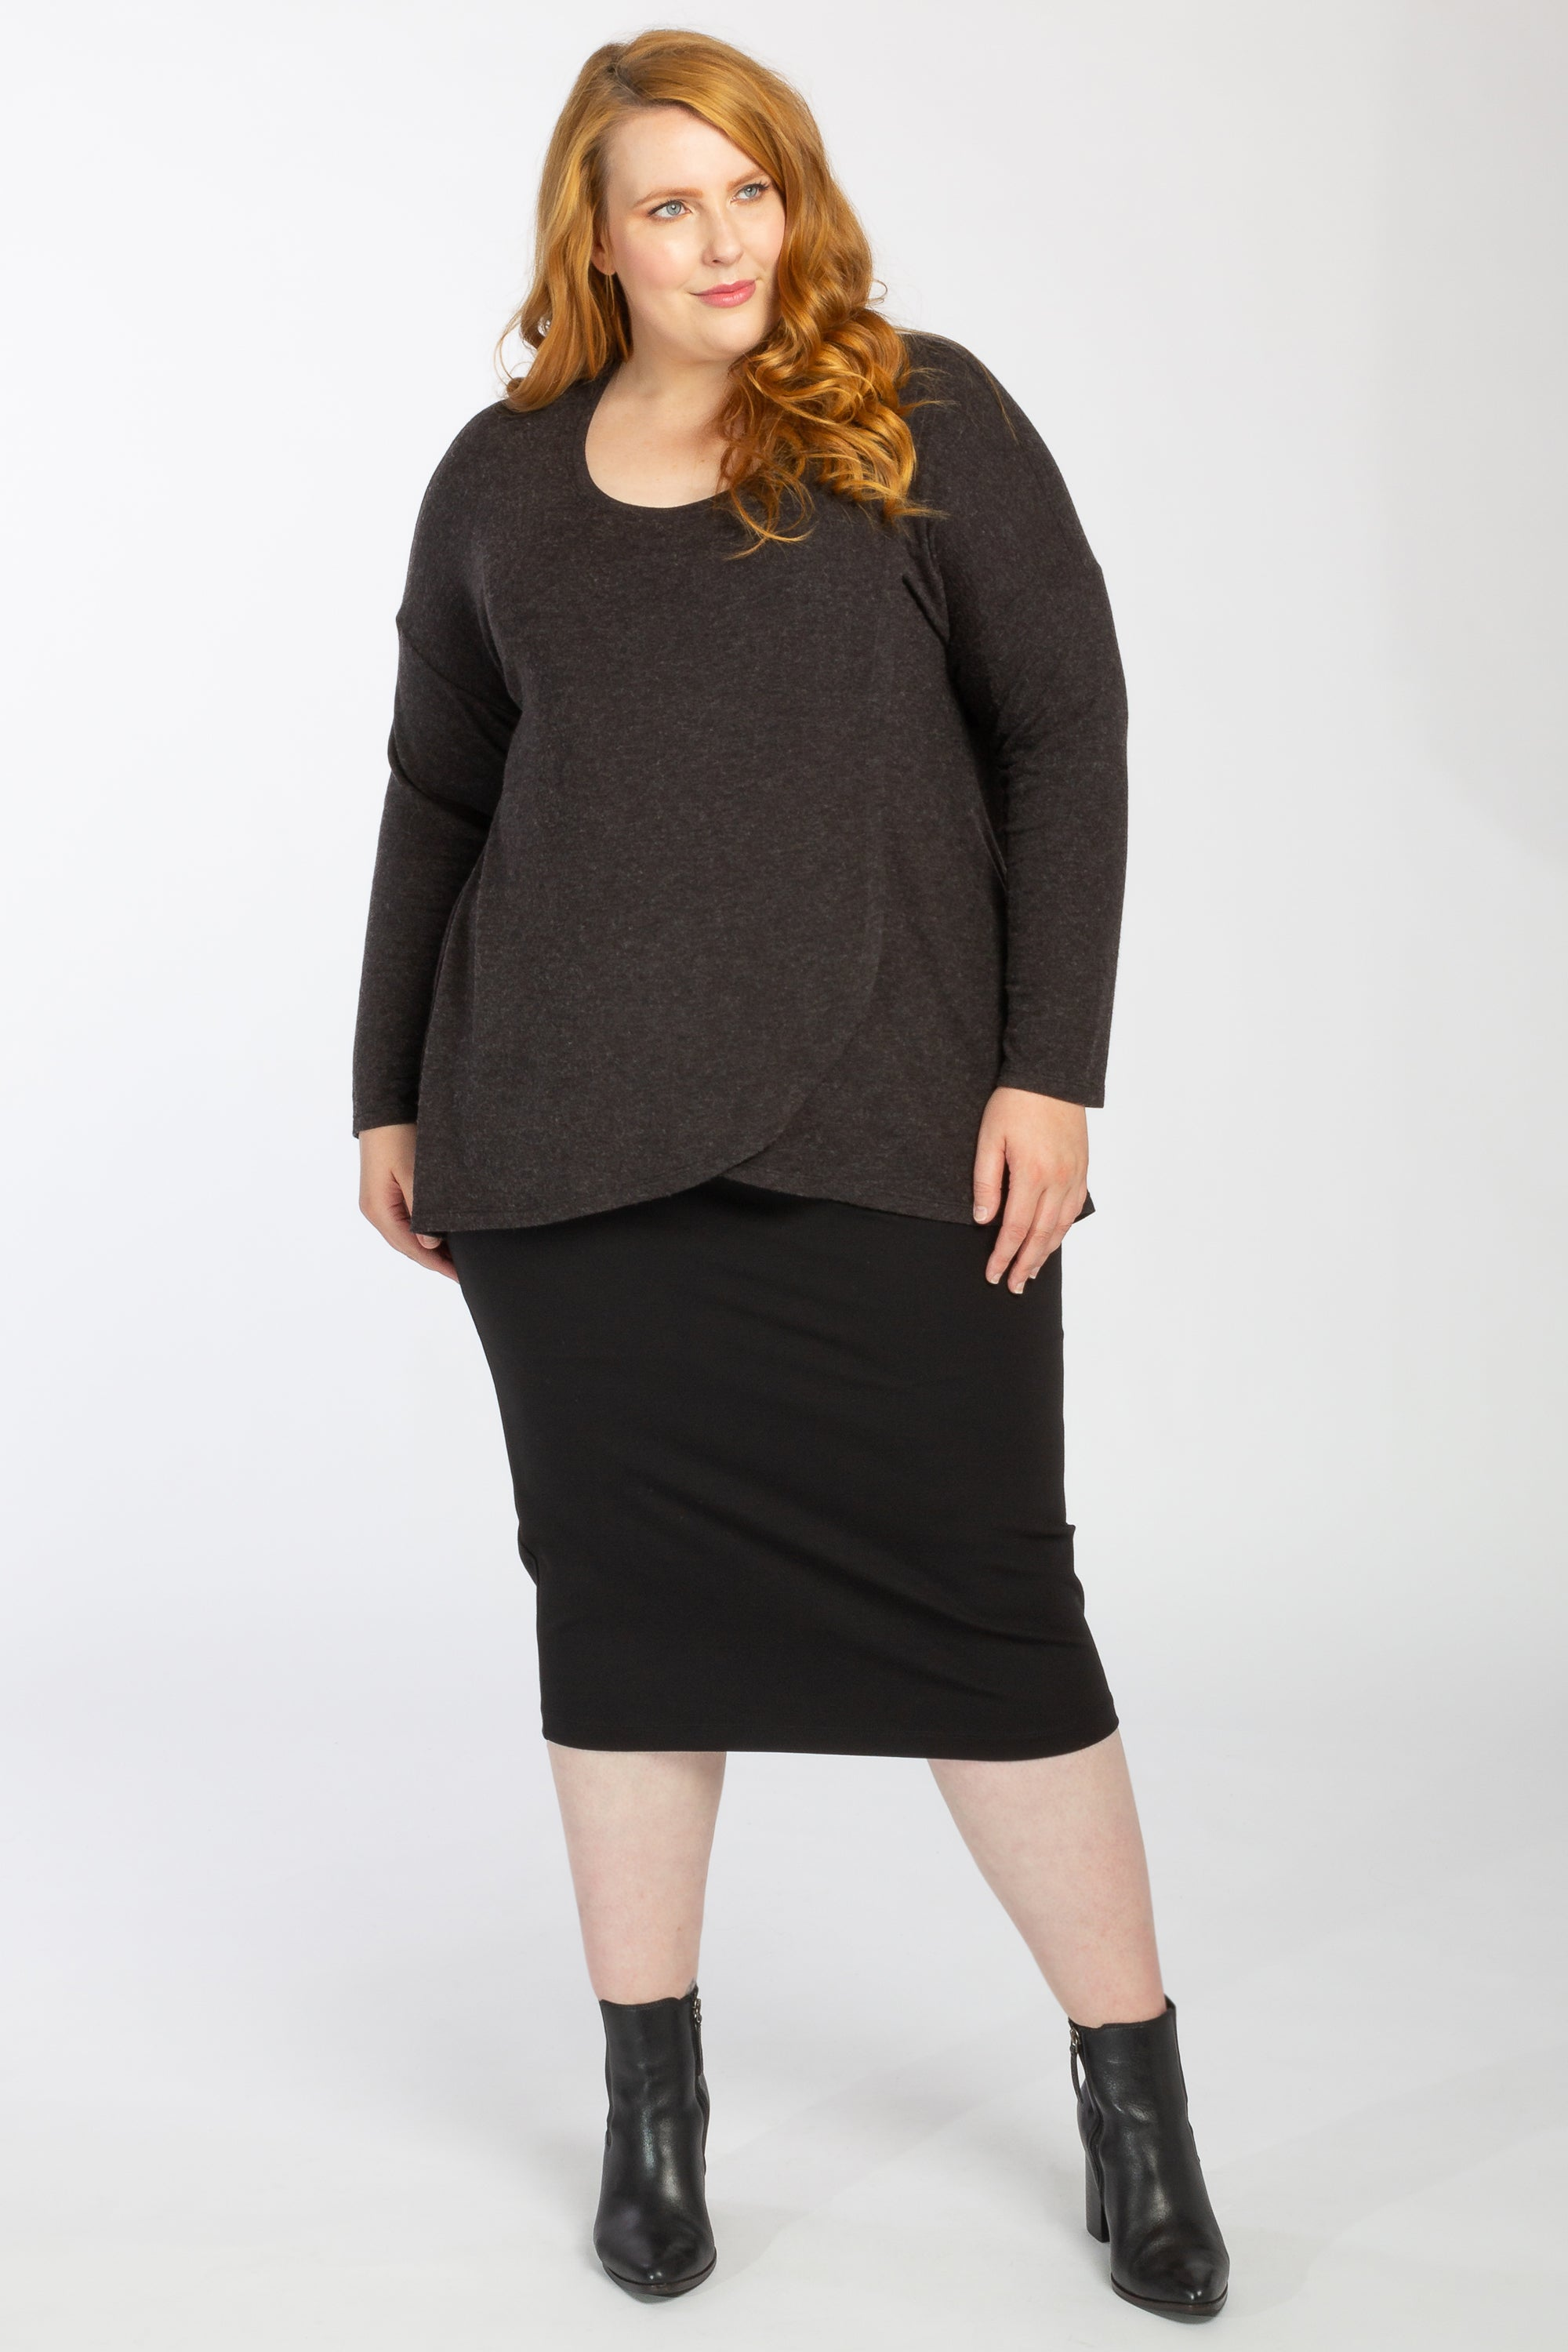 Wrapped Up In Your Love Knit - Charcoal Marle